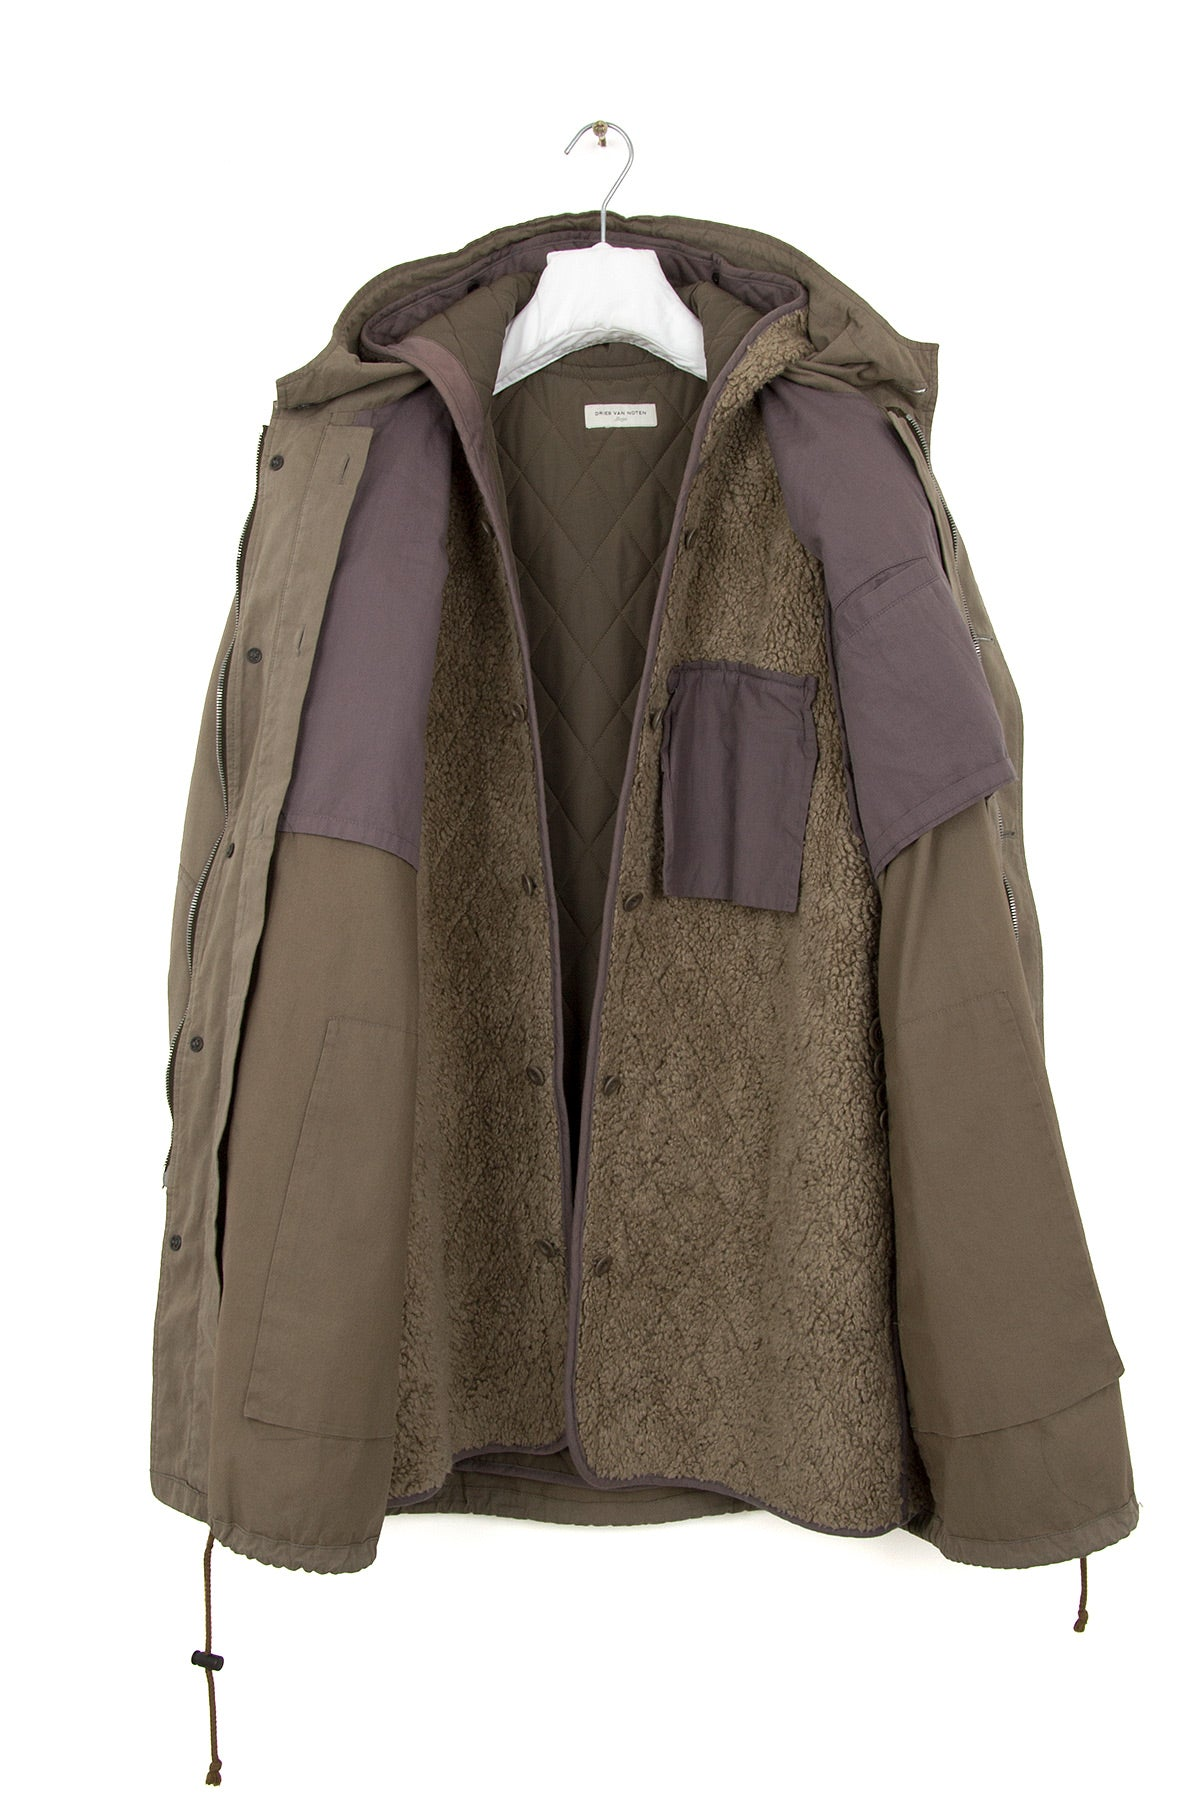 2004 A/W COATED COTTON MILITARY PARKA WITH SHERPA LINING